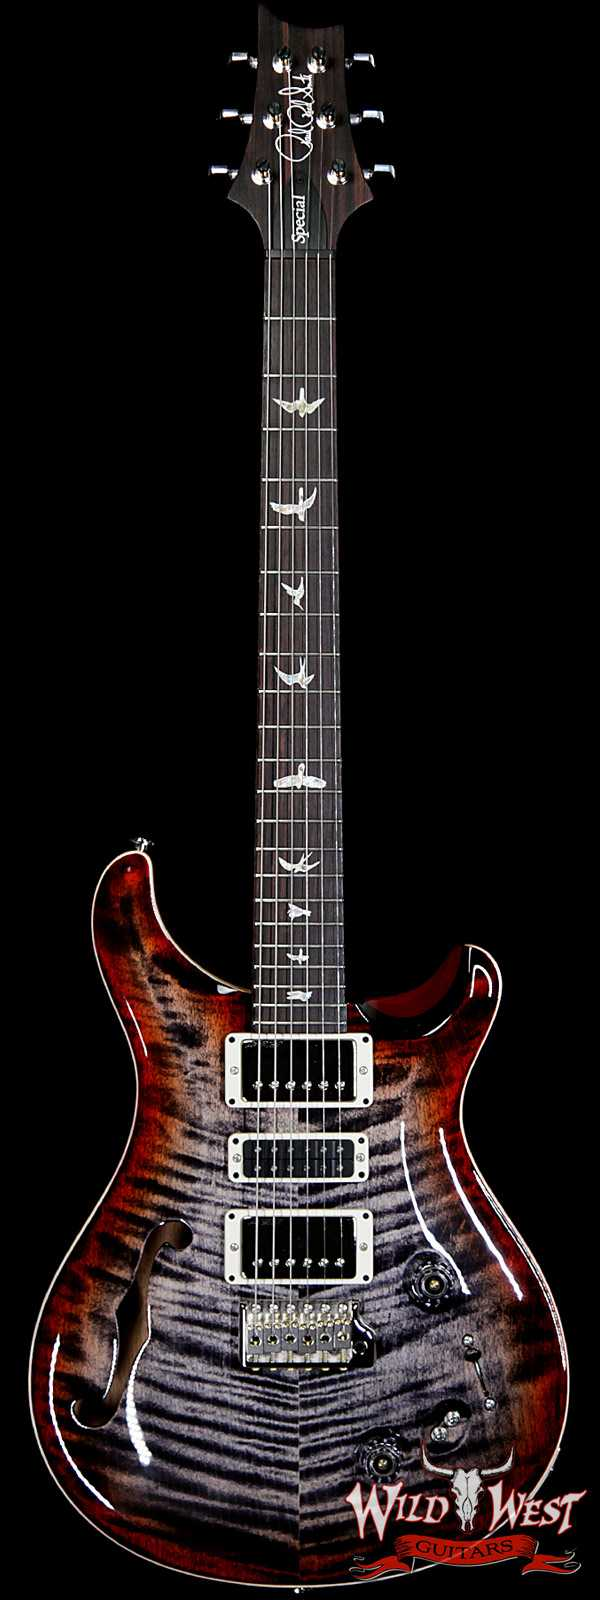 Paul Reed Smith PRS Limited Edition Special 22 Semi-Hollow Rosewood Fingerboard Charcoal Cherry Burst